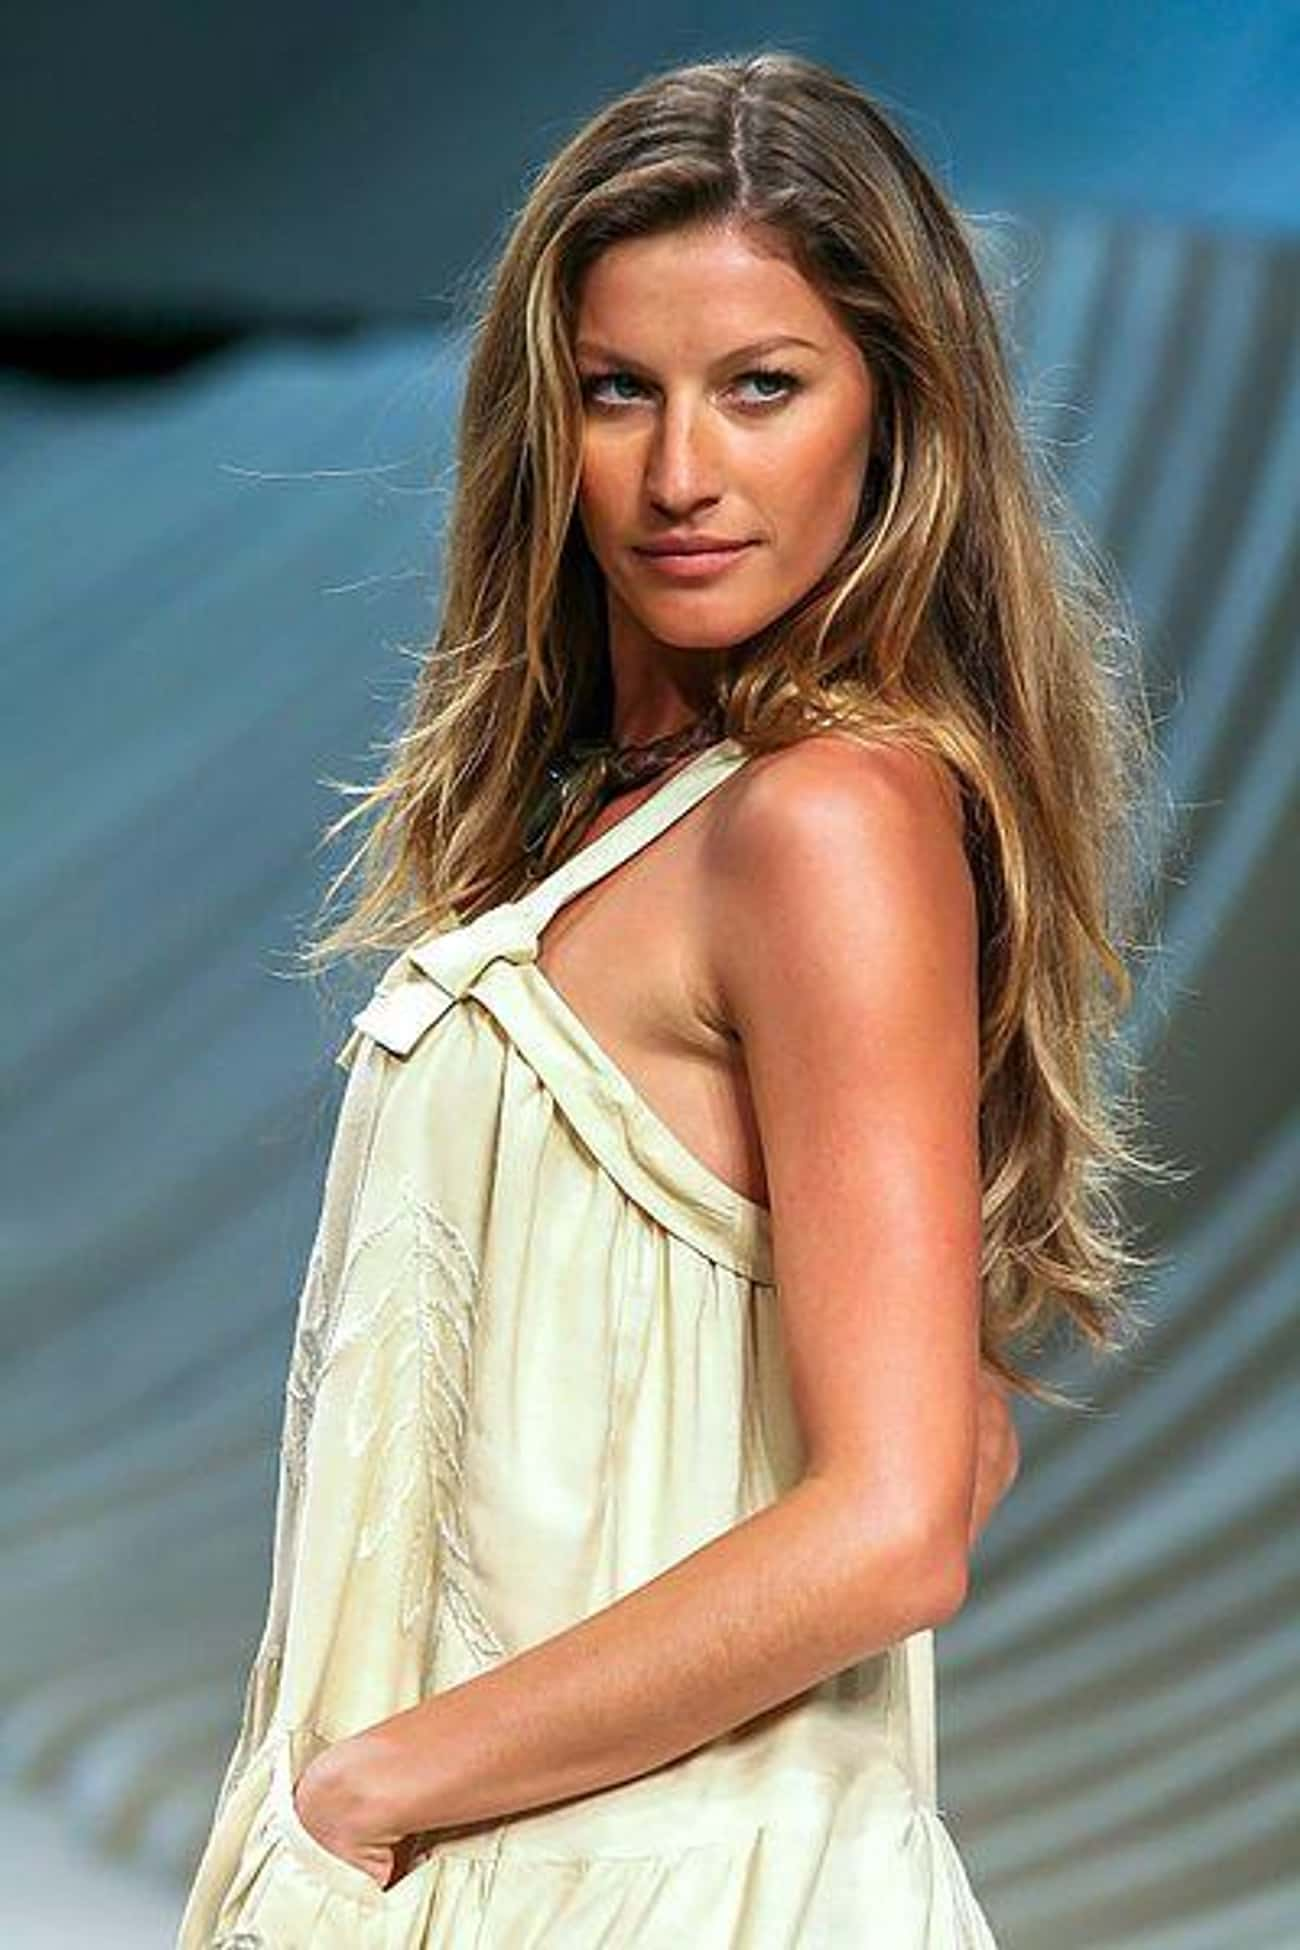 Gisele Bündchen is listed (or ranked) 4 on the list Famous High School Dropouts